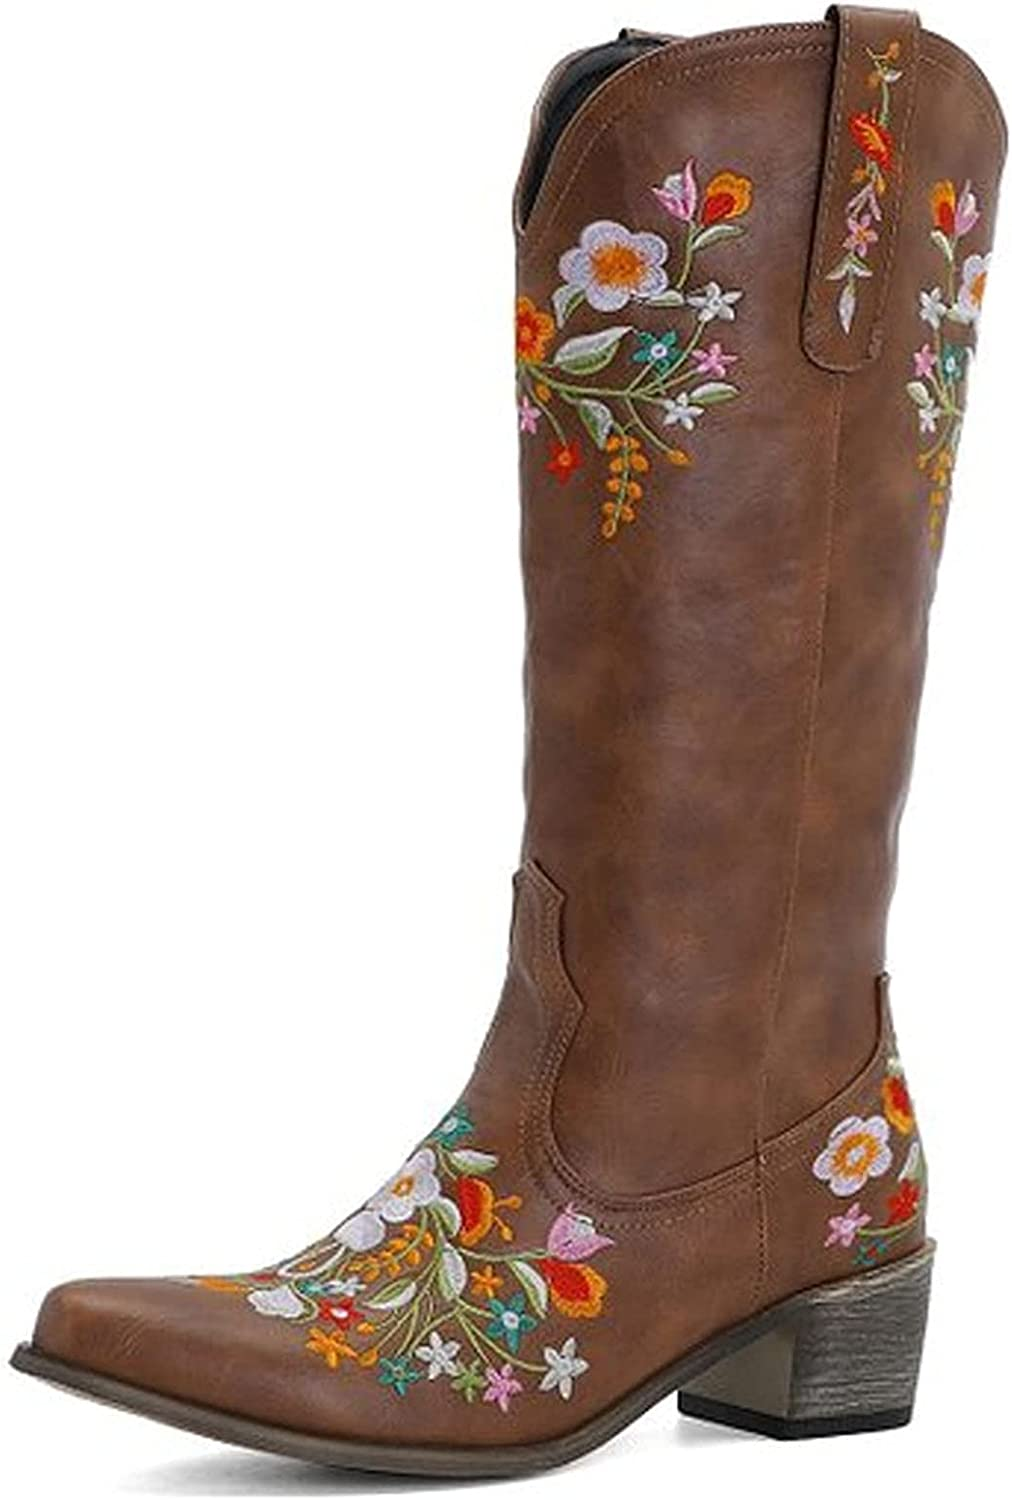 VOMIRA Cowgirl Boots for Women Vintage Pointed Toe Floral Embroidery Ankle Boots Chunky Heel Weatern Knight Boots